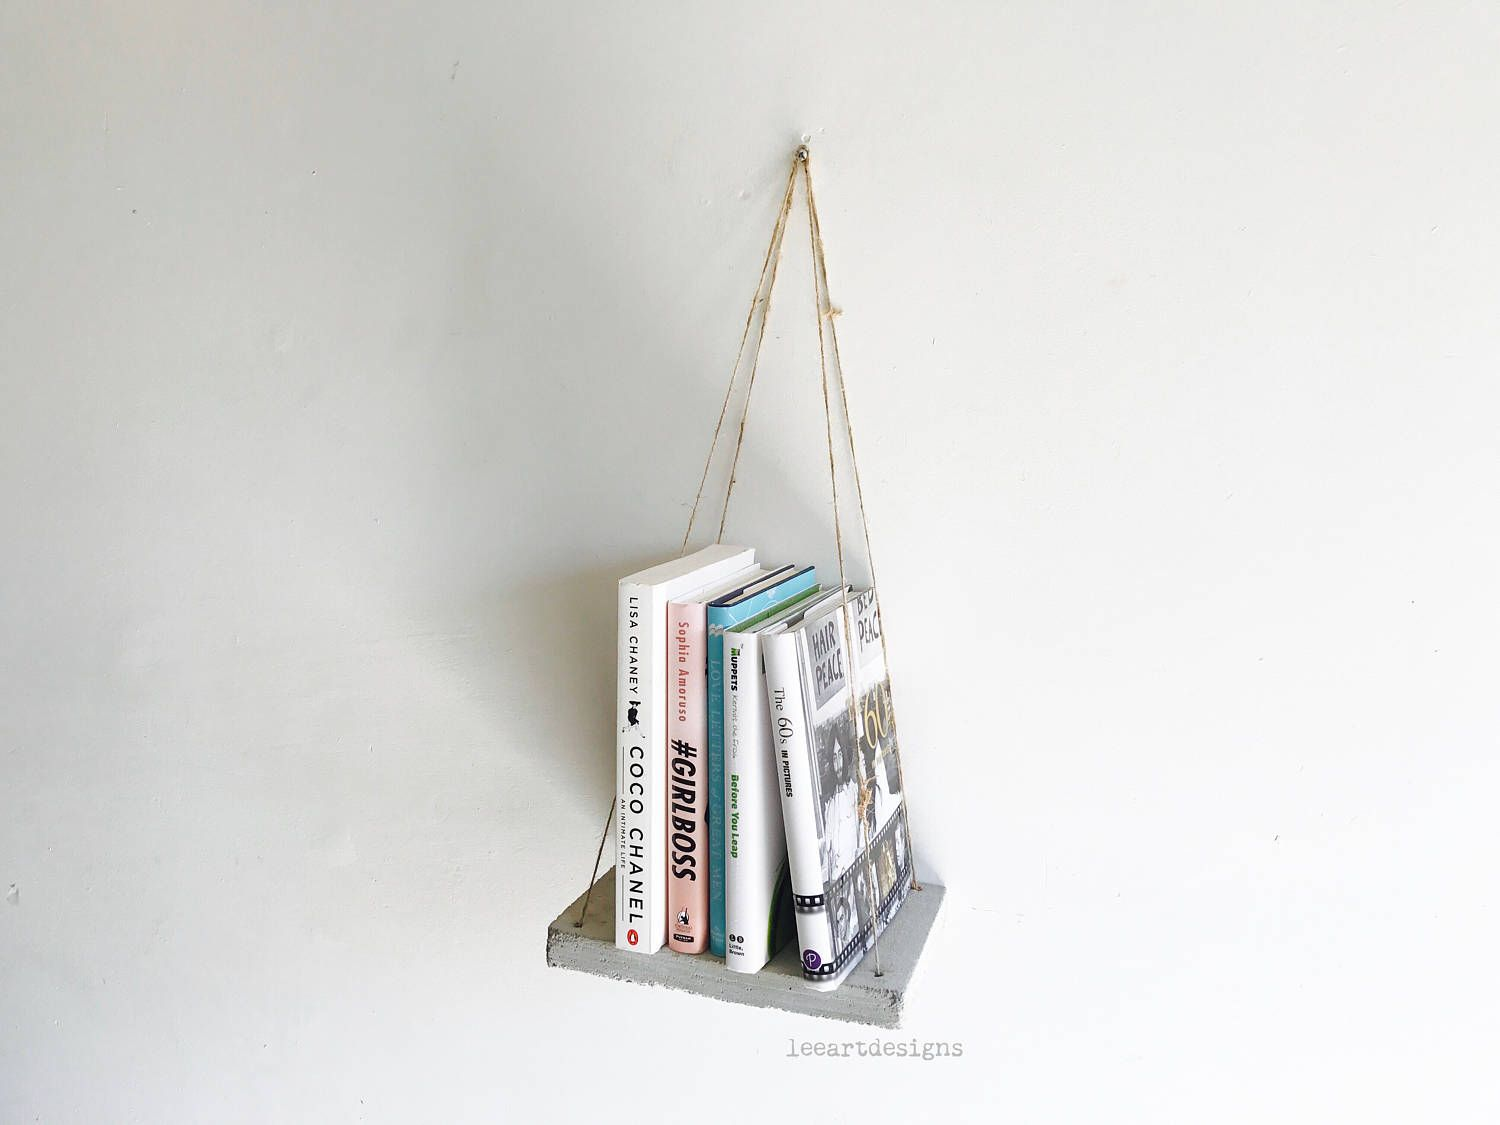 urban decor furniture. Concrete Swing Shelf, Industrial Decor, Beach Urban Home Furniture, Book Floating Shelf Decor Furniture